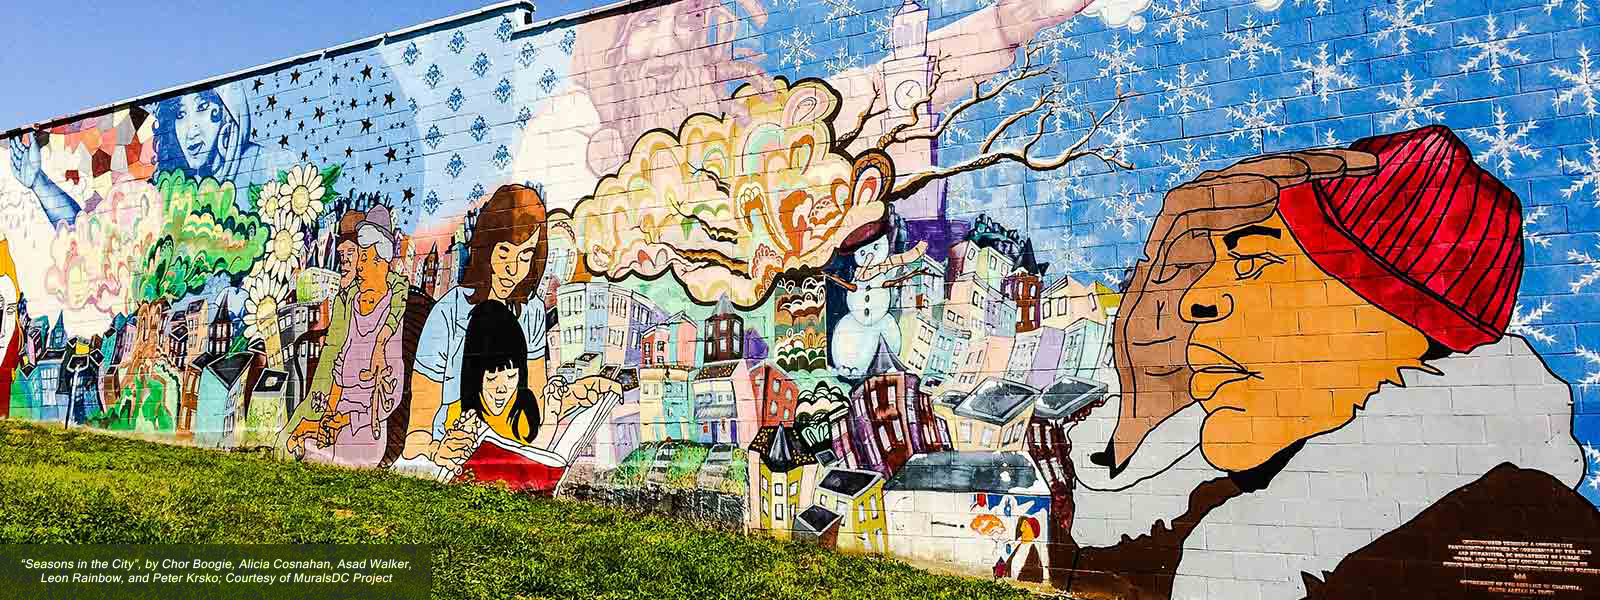 Seasons in the City, Chor Boogie, Alicia Cosnahan, Asad Walker, Leon Rainbow, Peter Krsko, MuralsDC Project